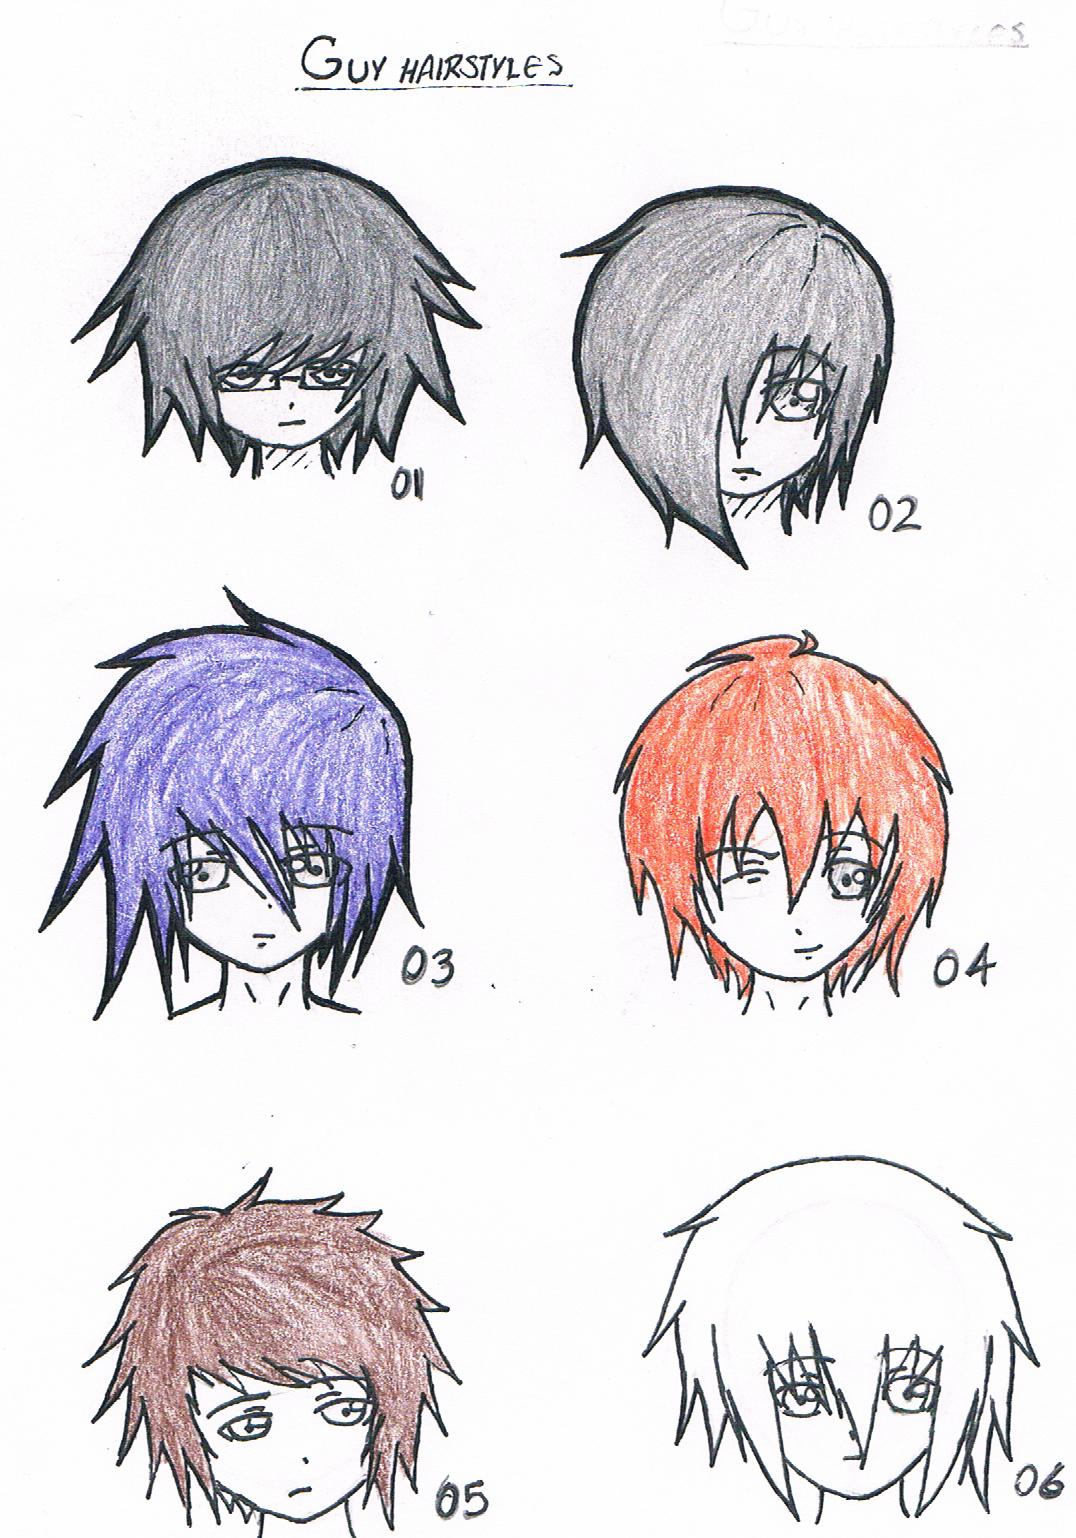 anime boy hair styles hairstyles by blackheart4549 on deviantart 7664